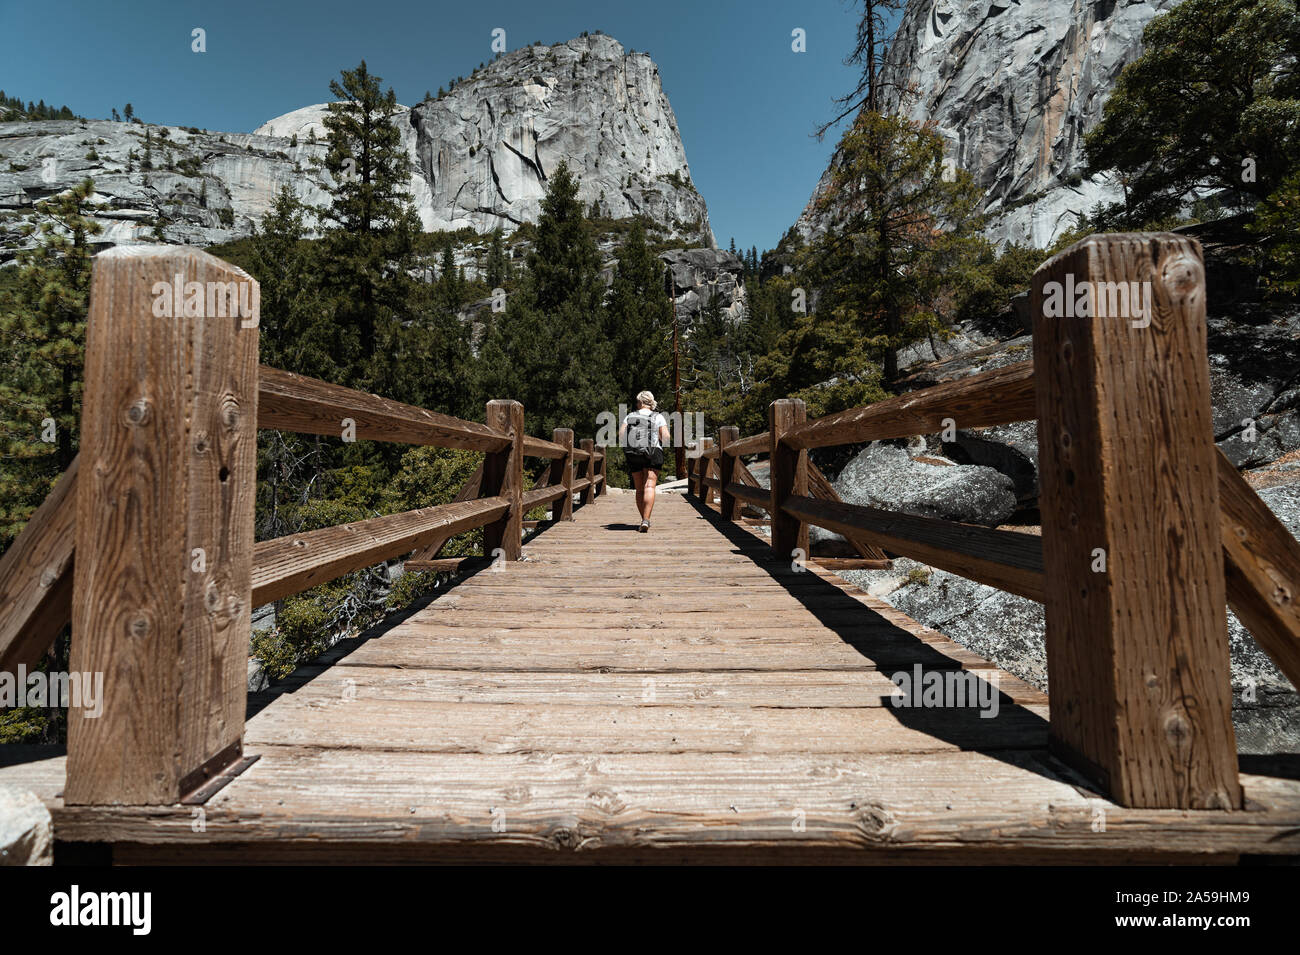 Bridge to Vernal Fall in Yosemite National Park California Stock Photo